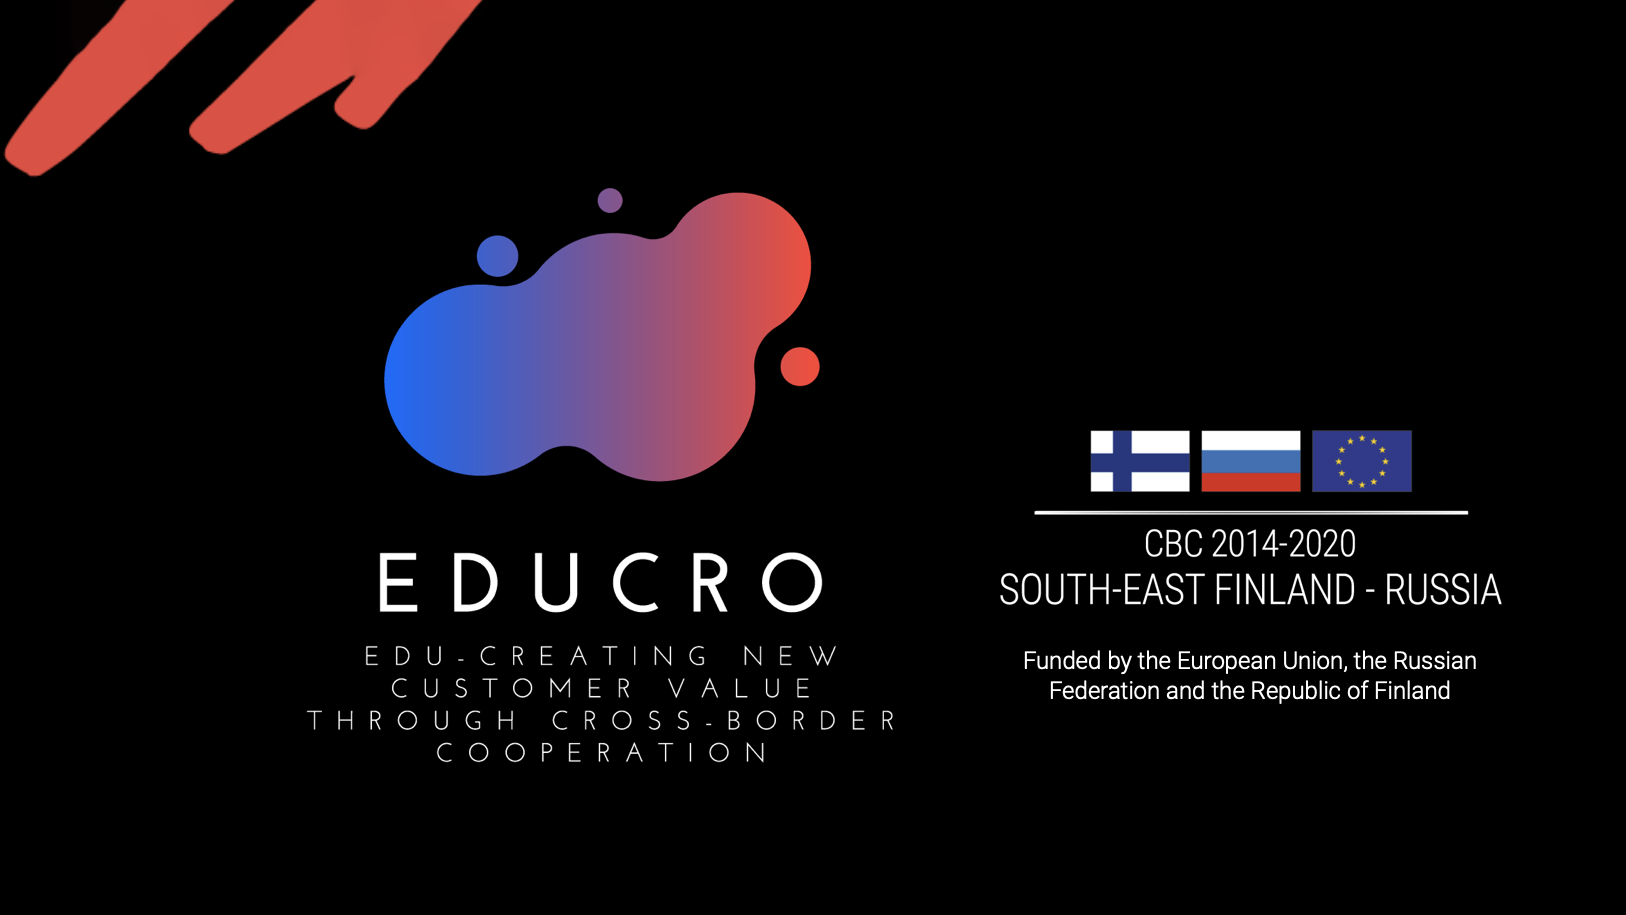 The logos of the EDUCRO project and its funding partner CBC against a black background.